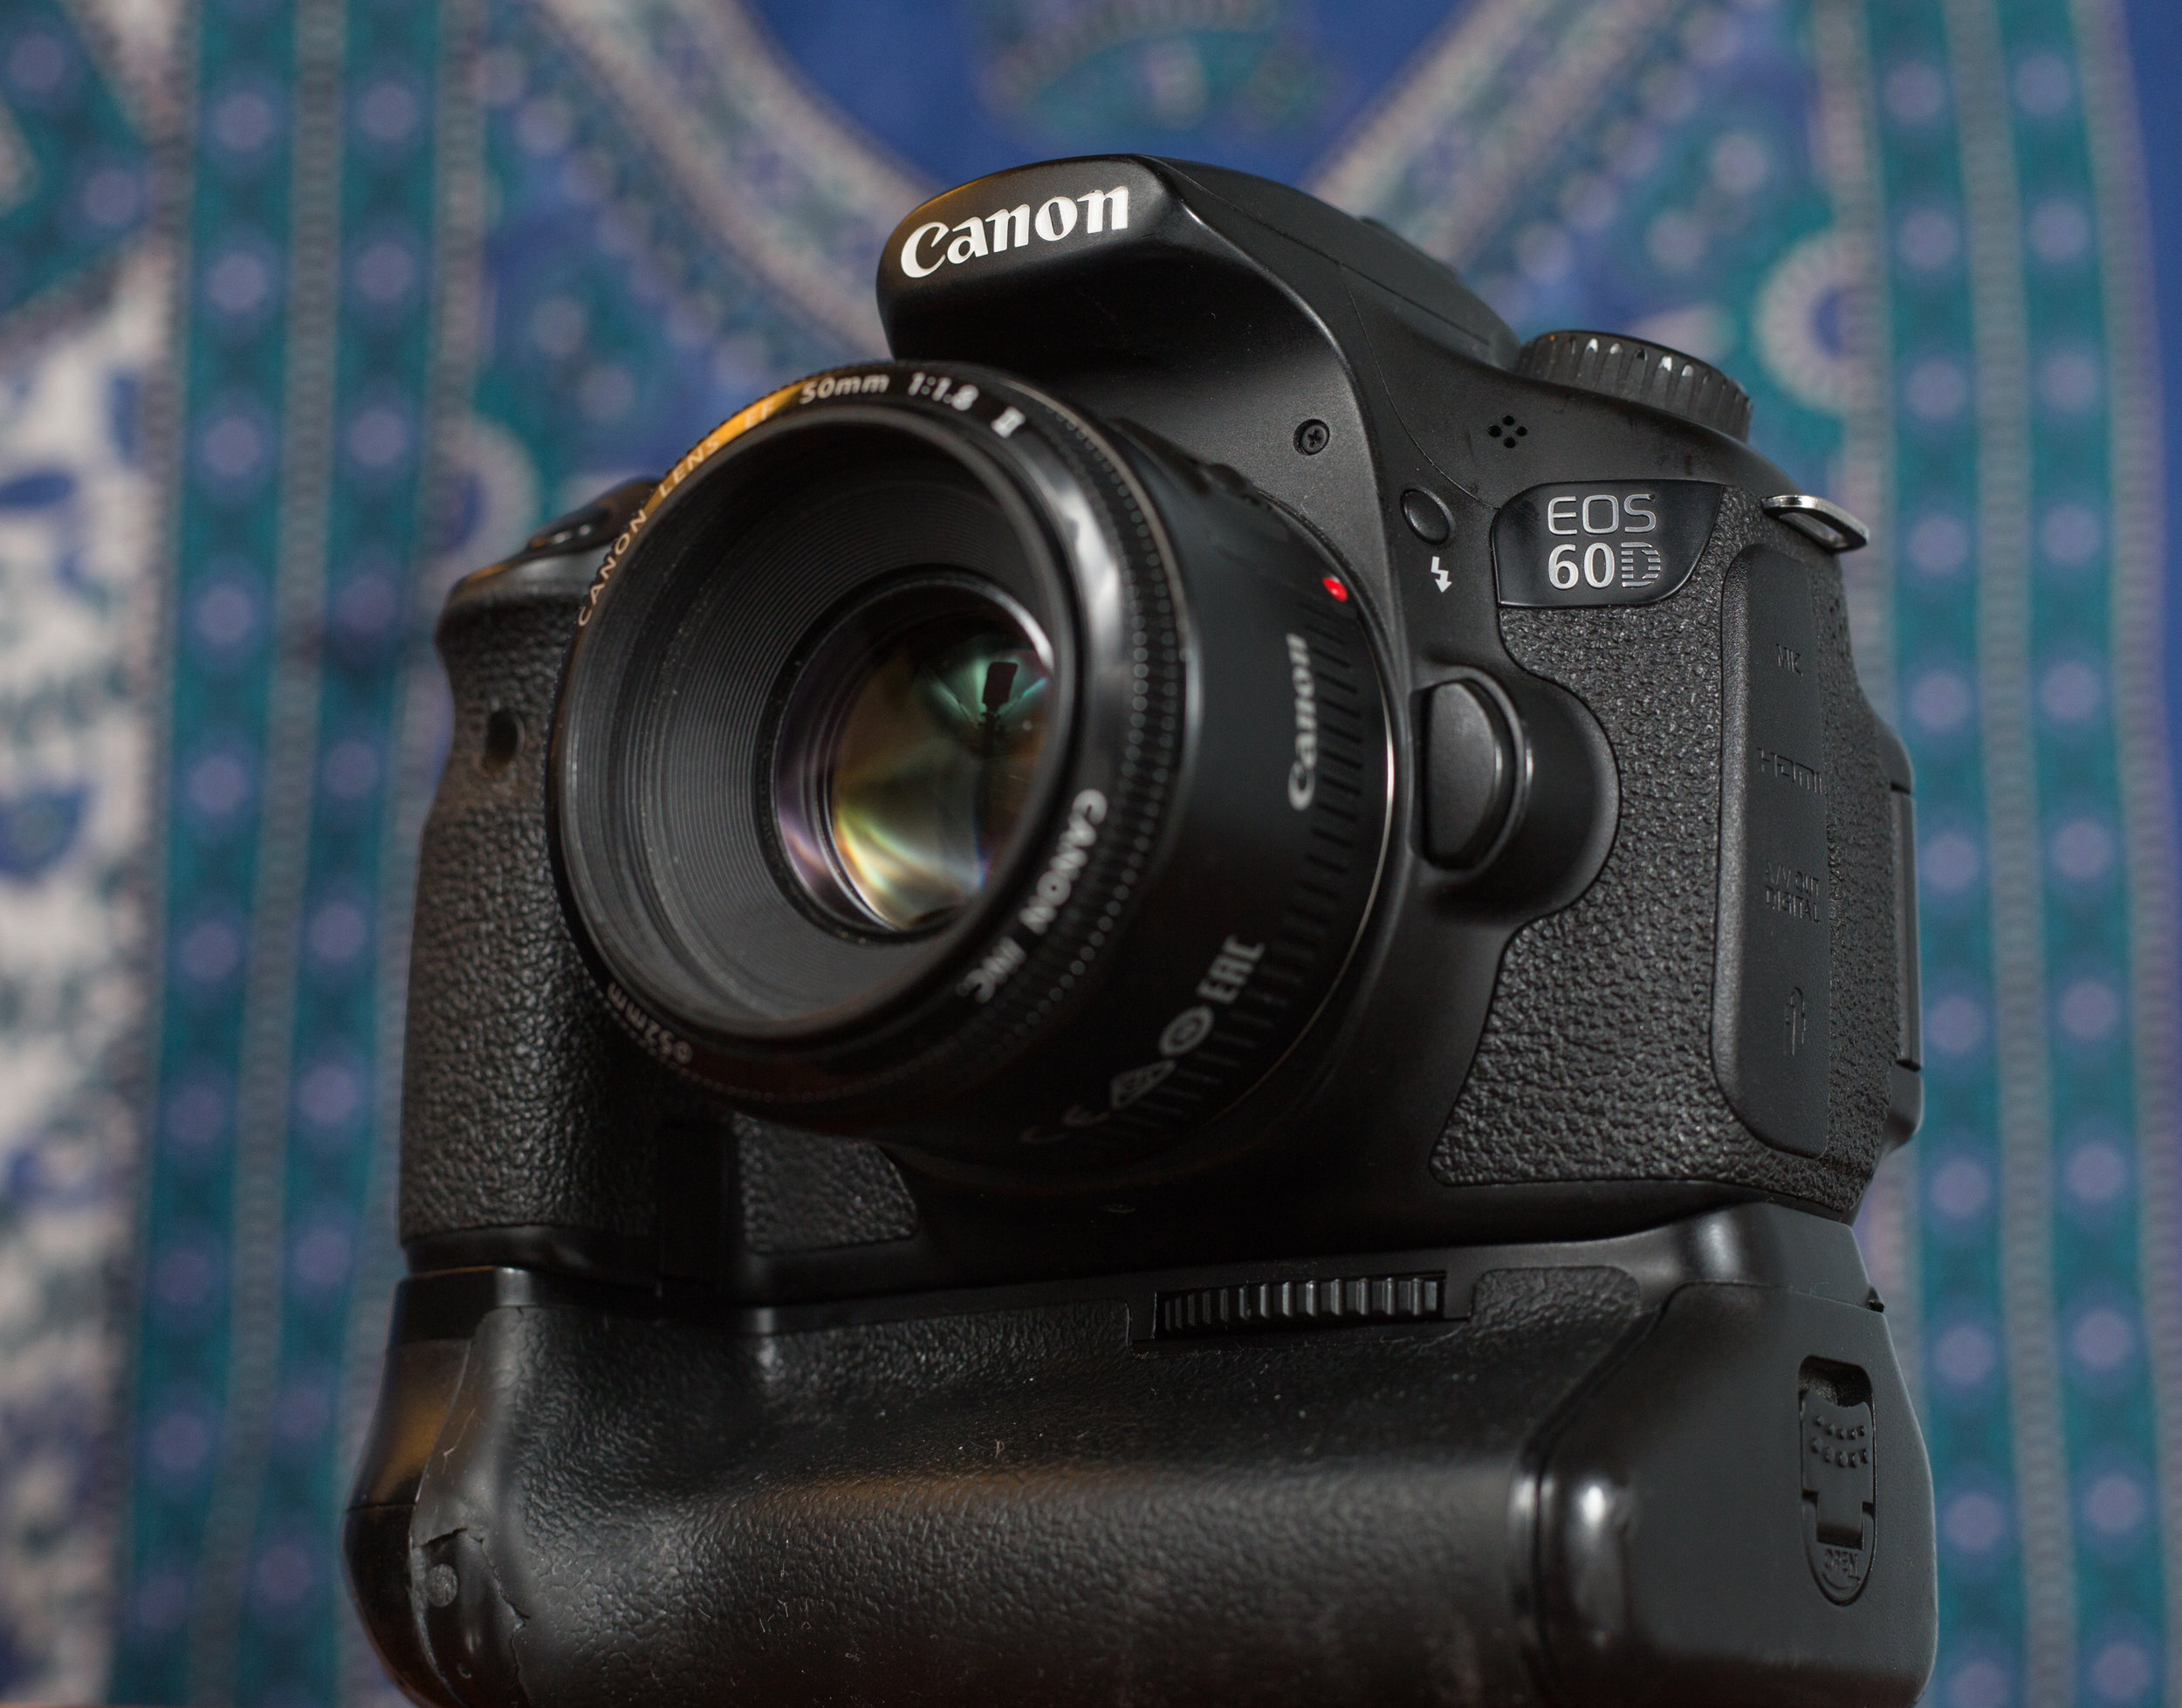 Practicing some product shots with my old 60D